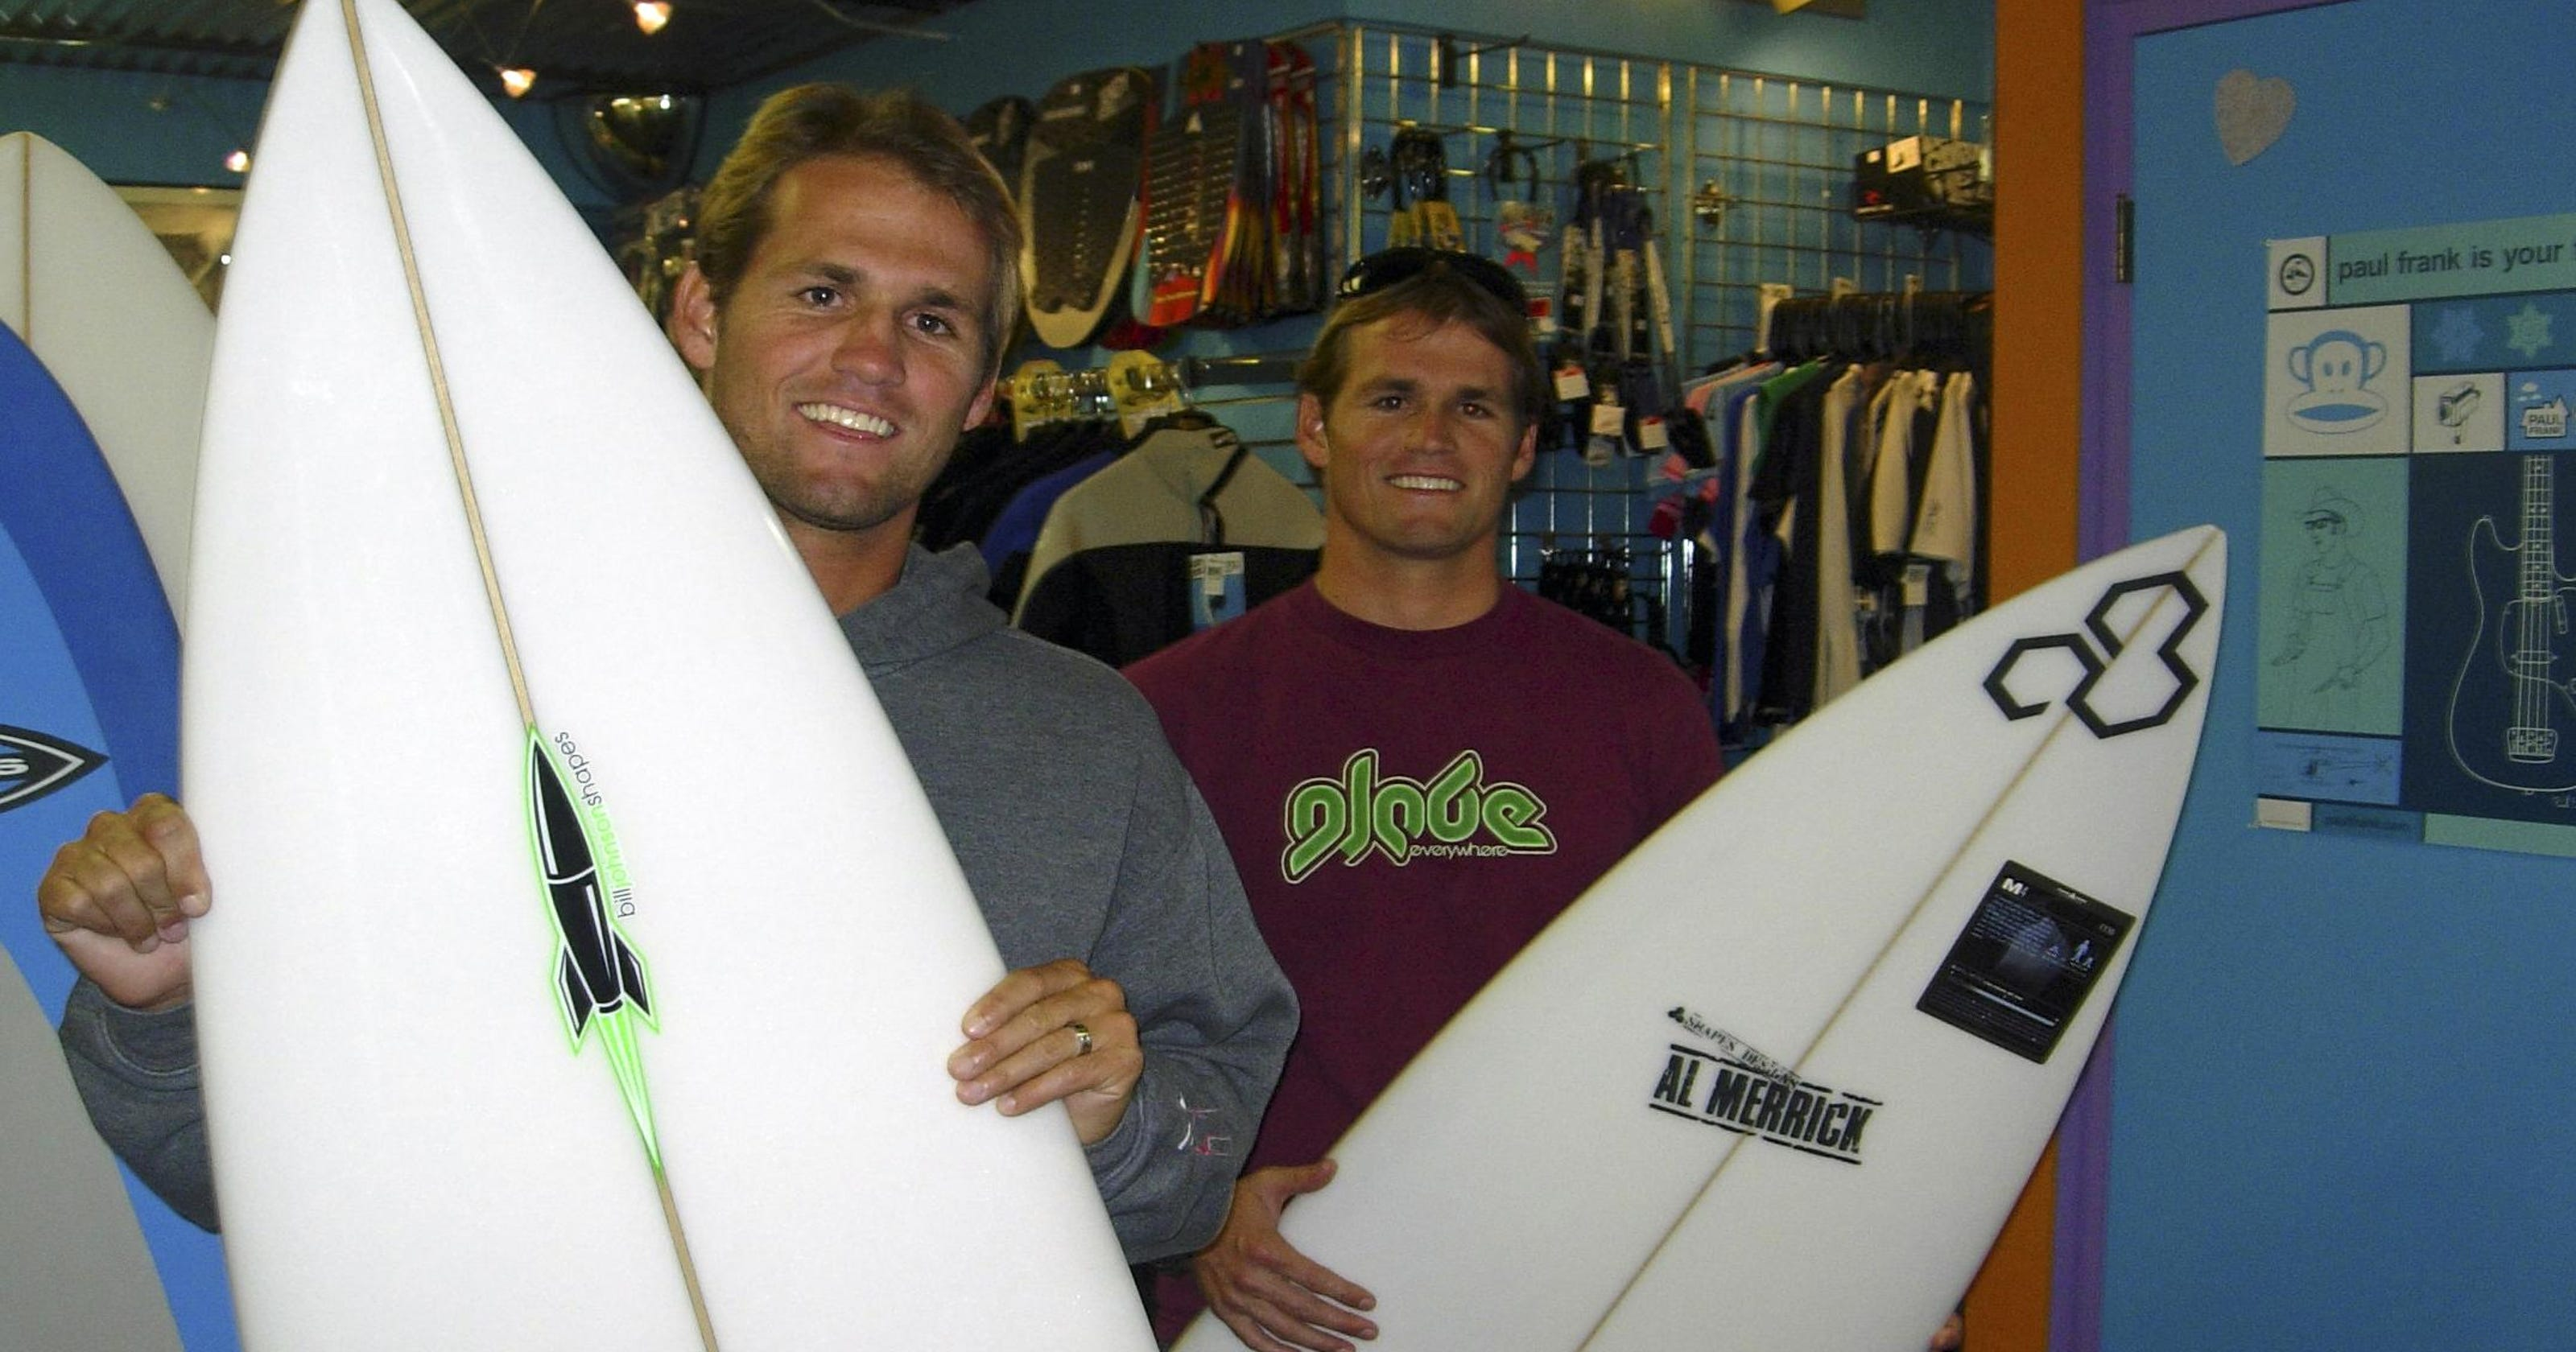 Battle of the Brothers' features Bryans, Hobgoods